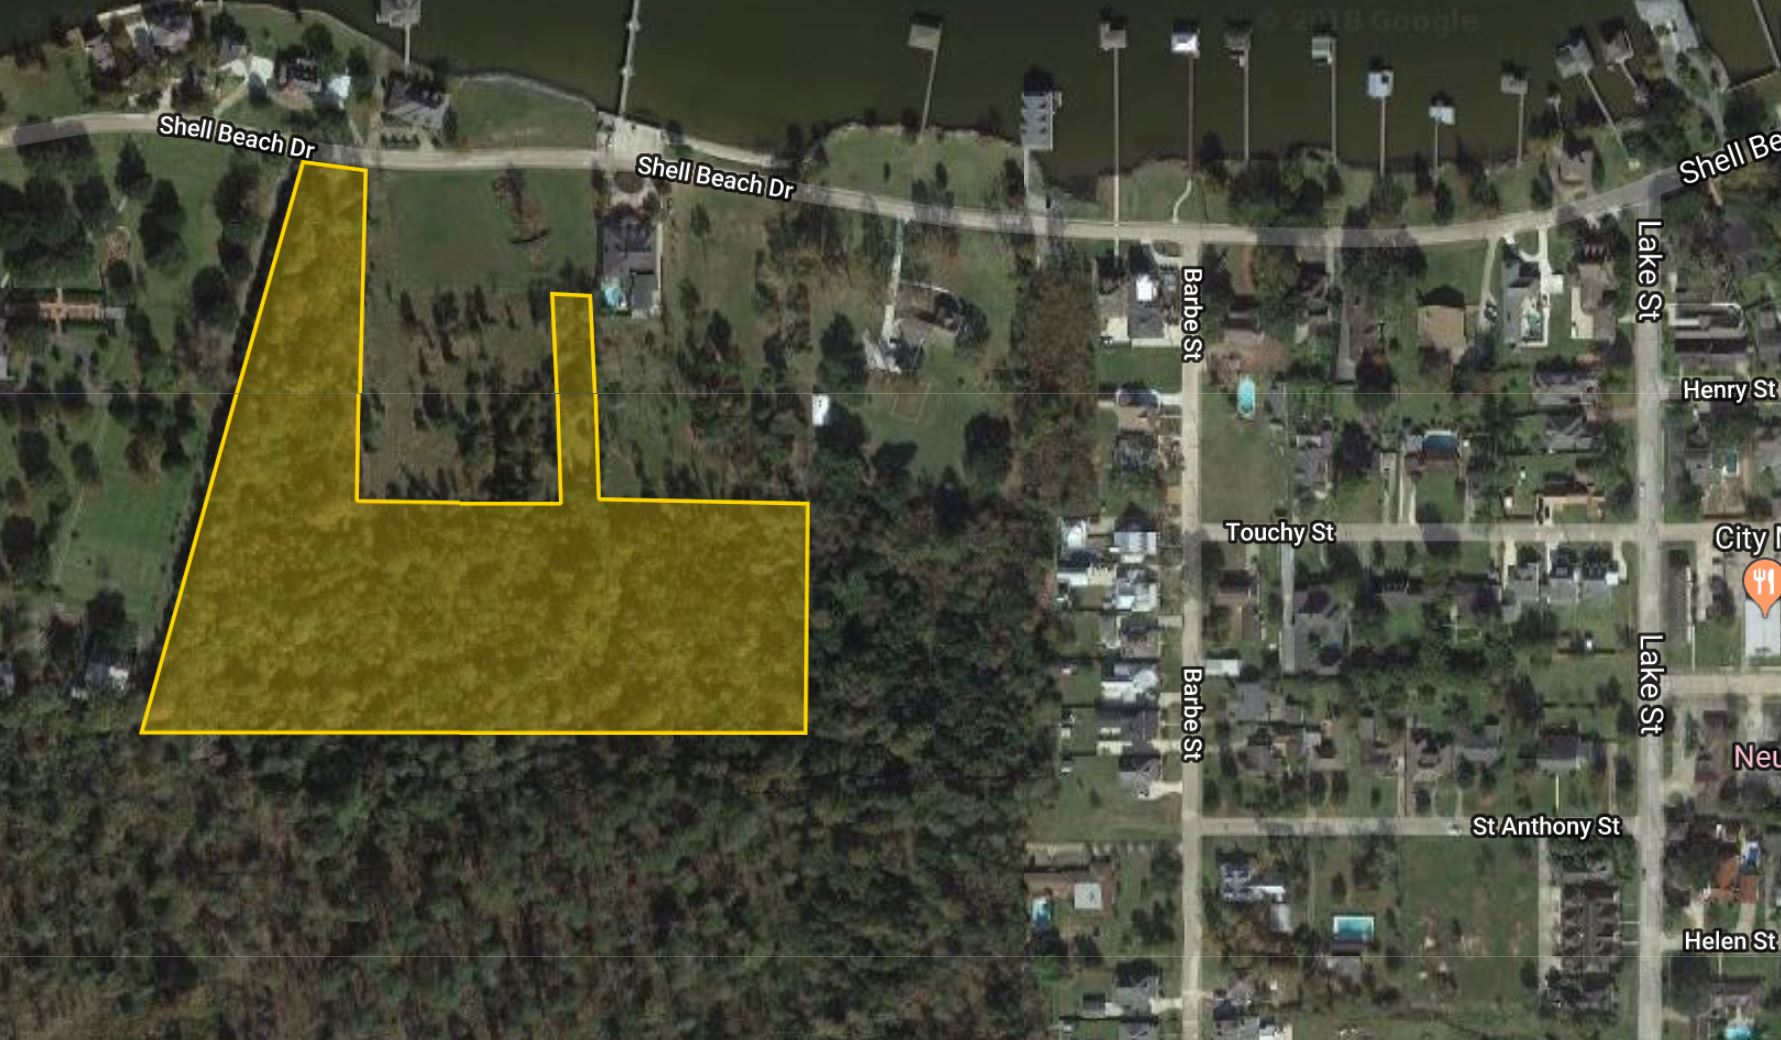 10 Acres available off Shell Beach Drive